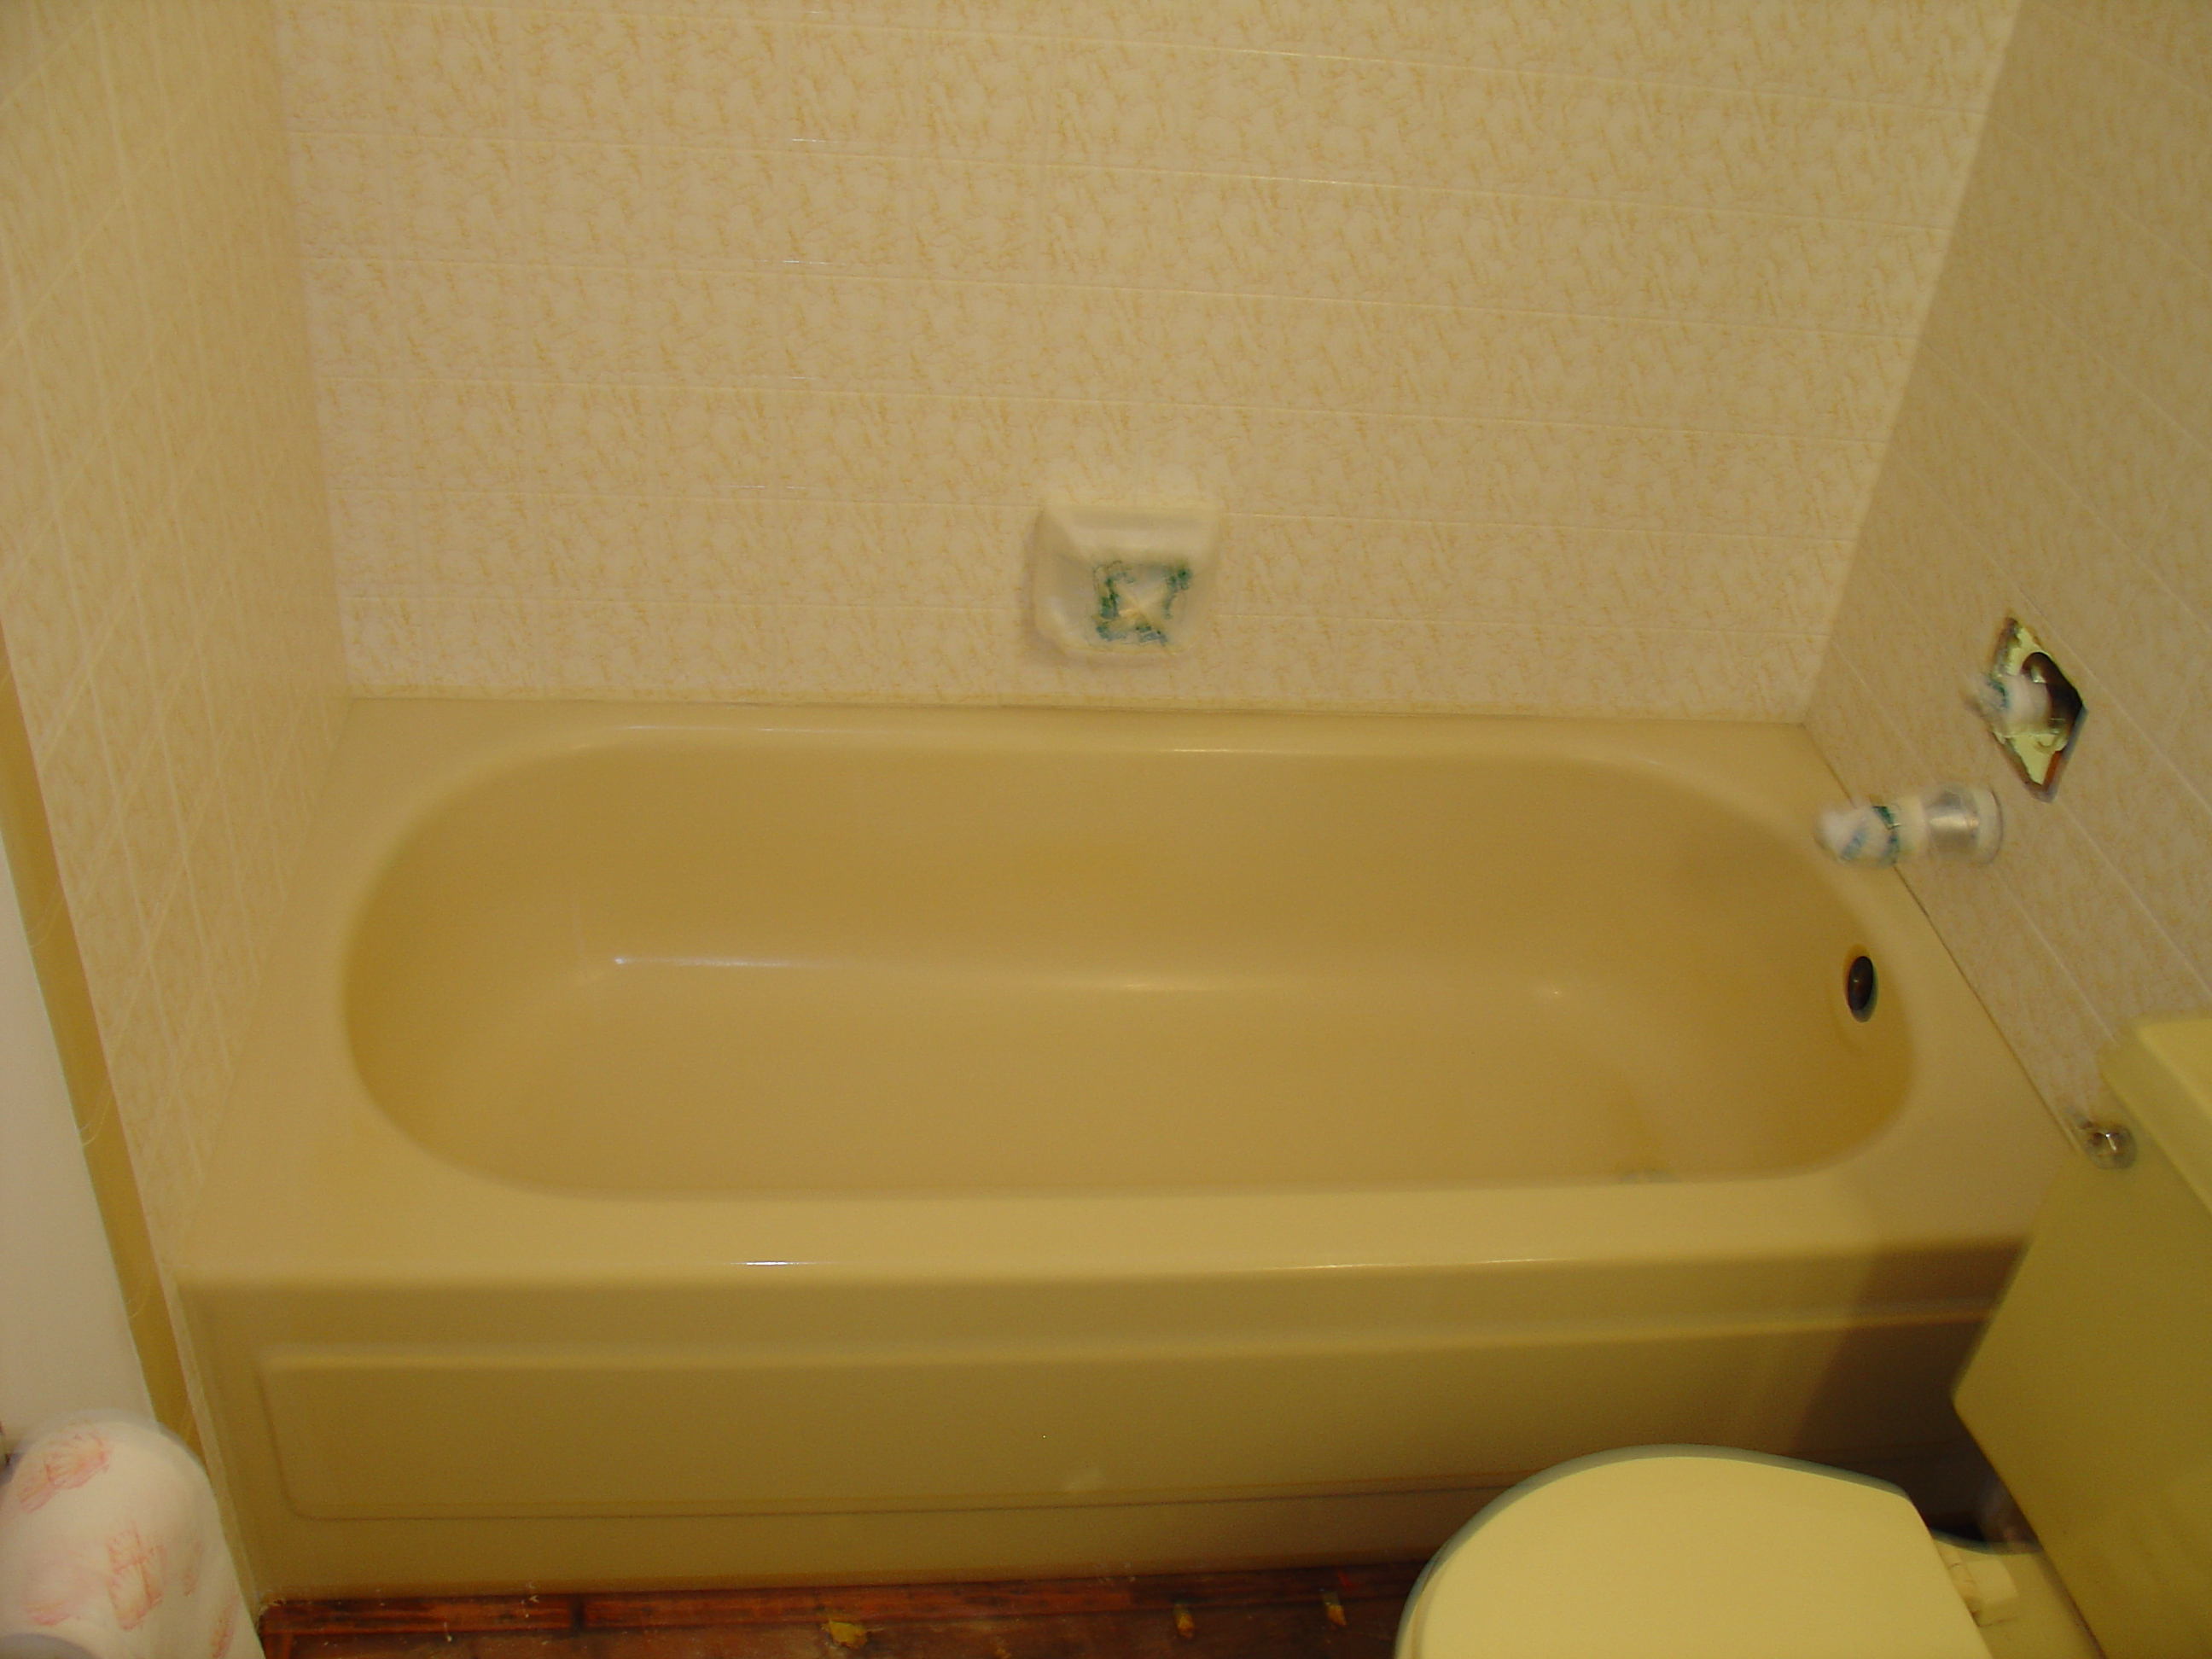 Bathtub reglazing refinishing bathtub liners st for Acrylic bathtub liners cost